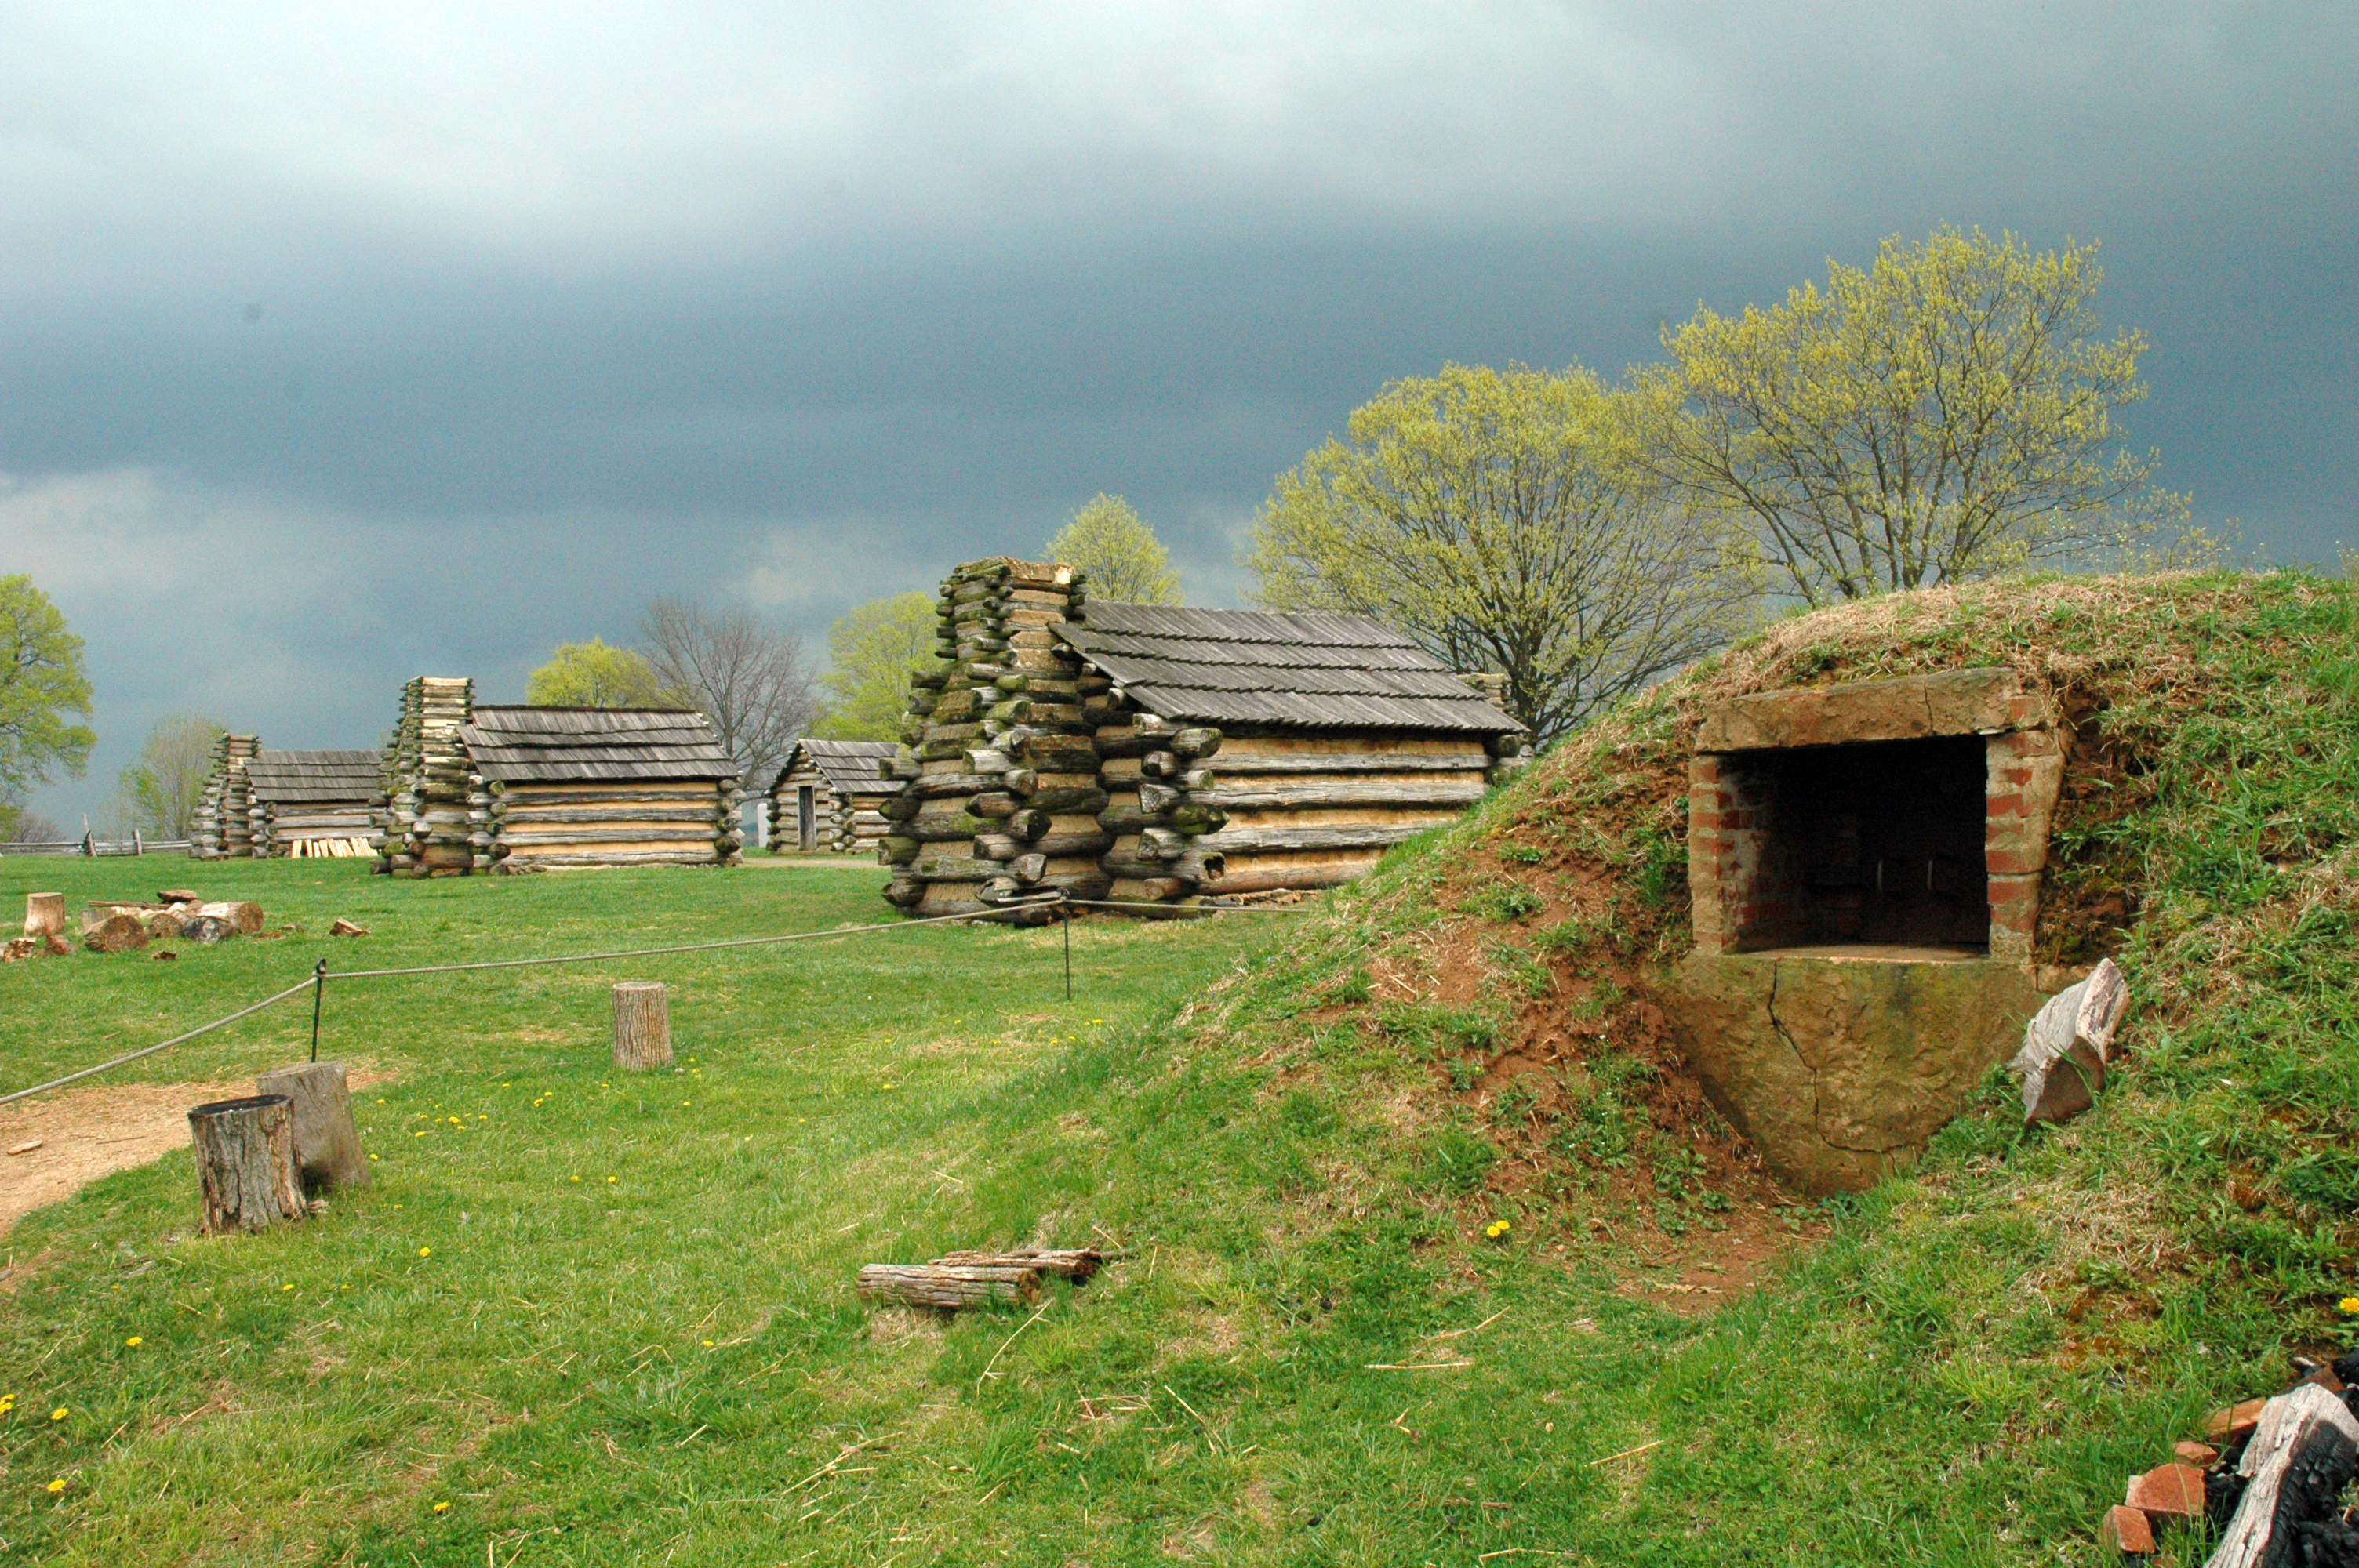 File:Valley Forge Oven And Cabins